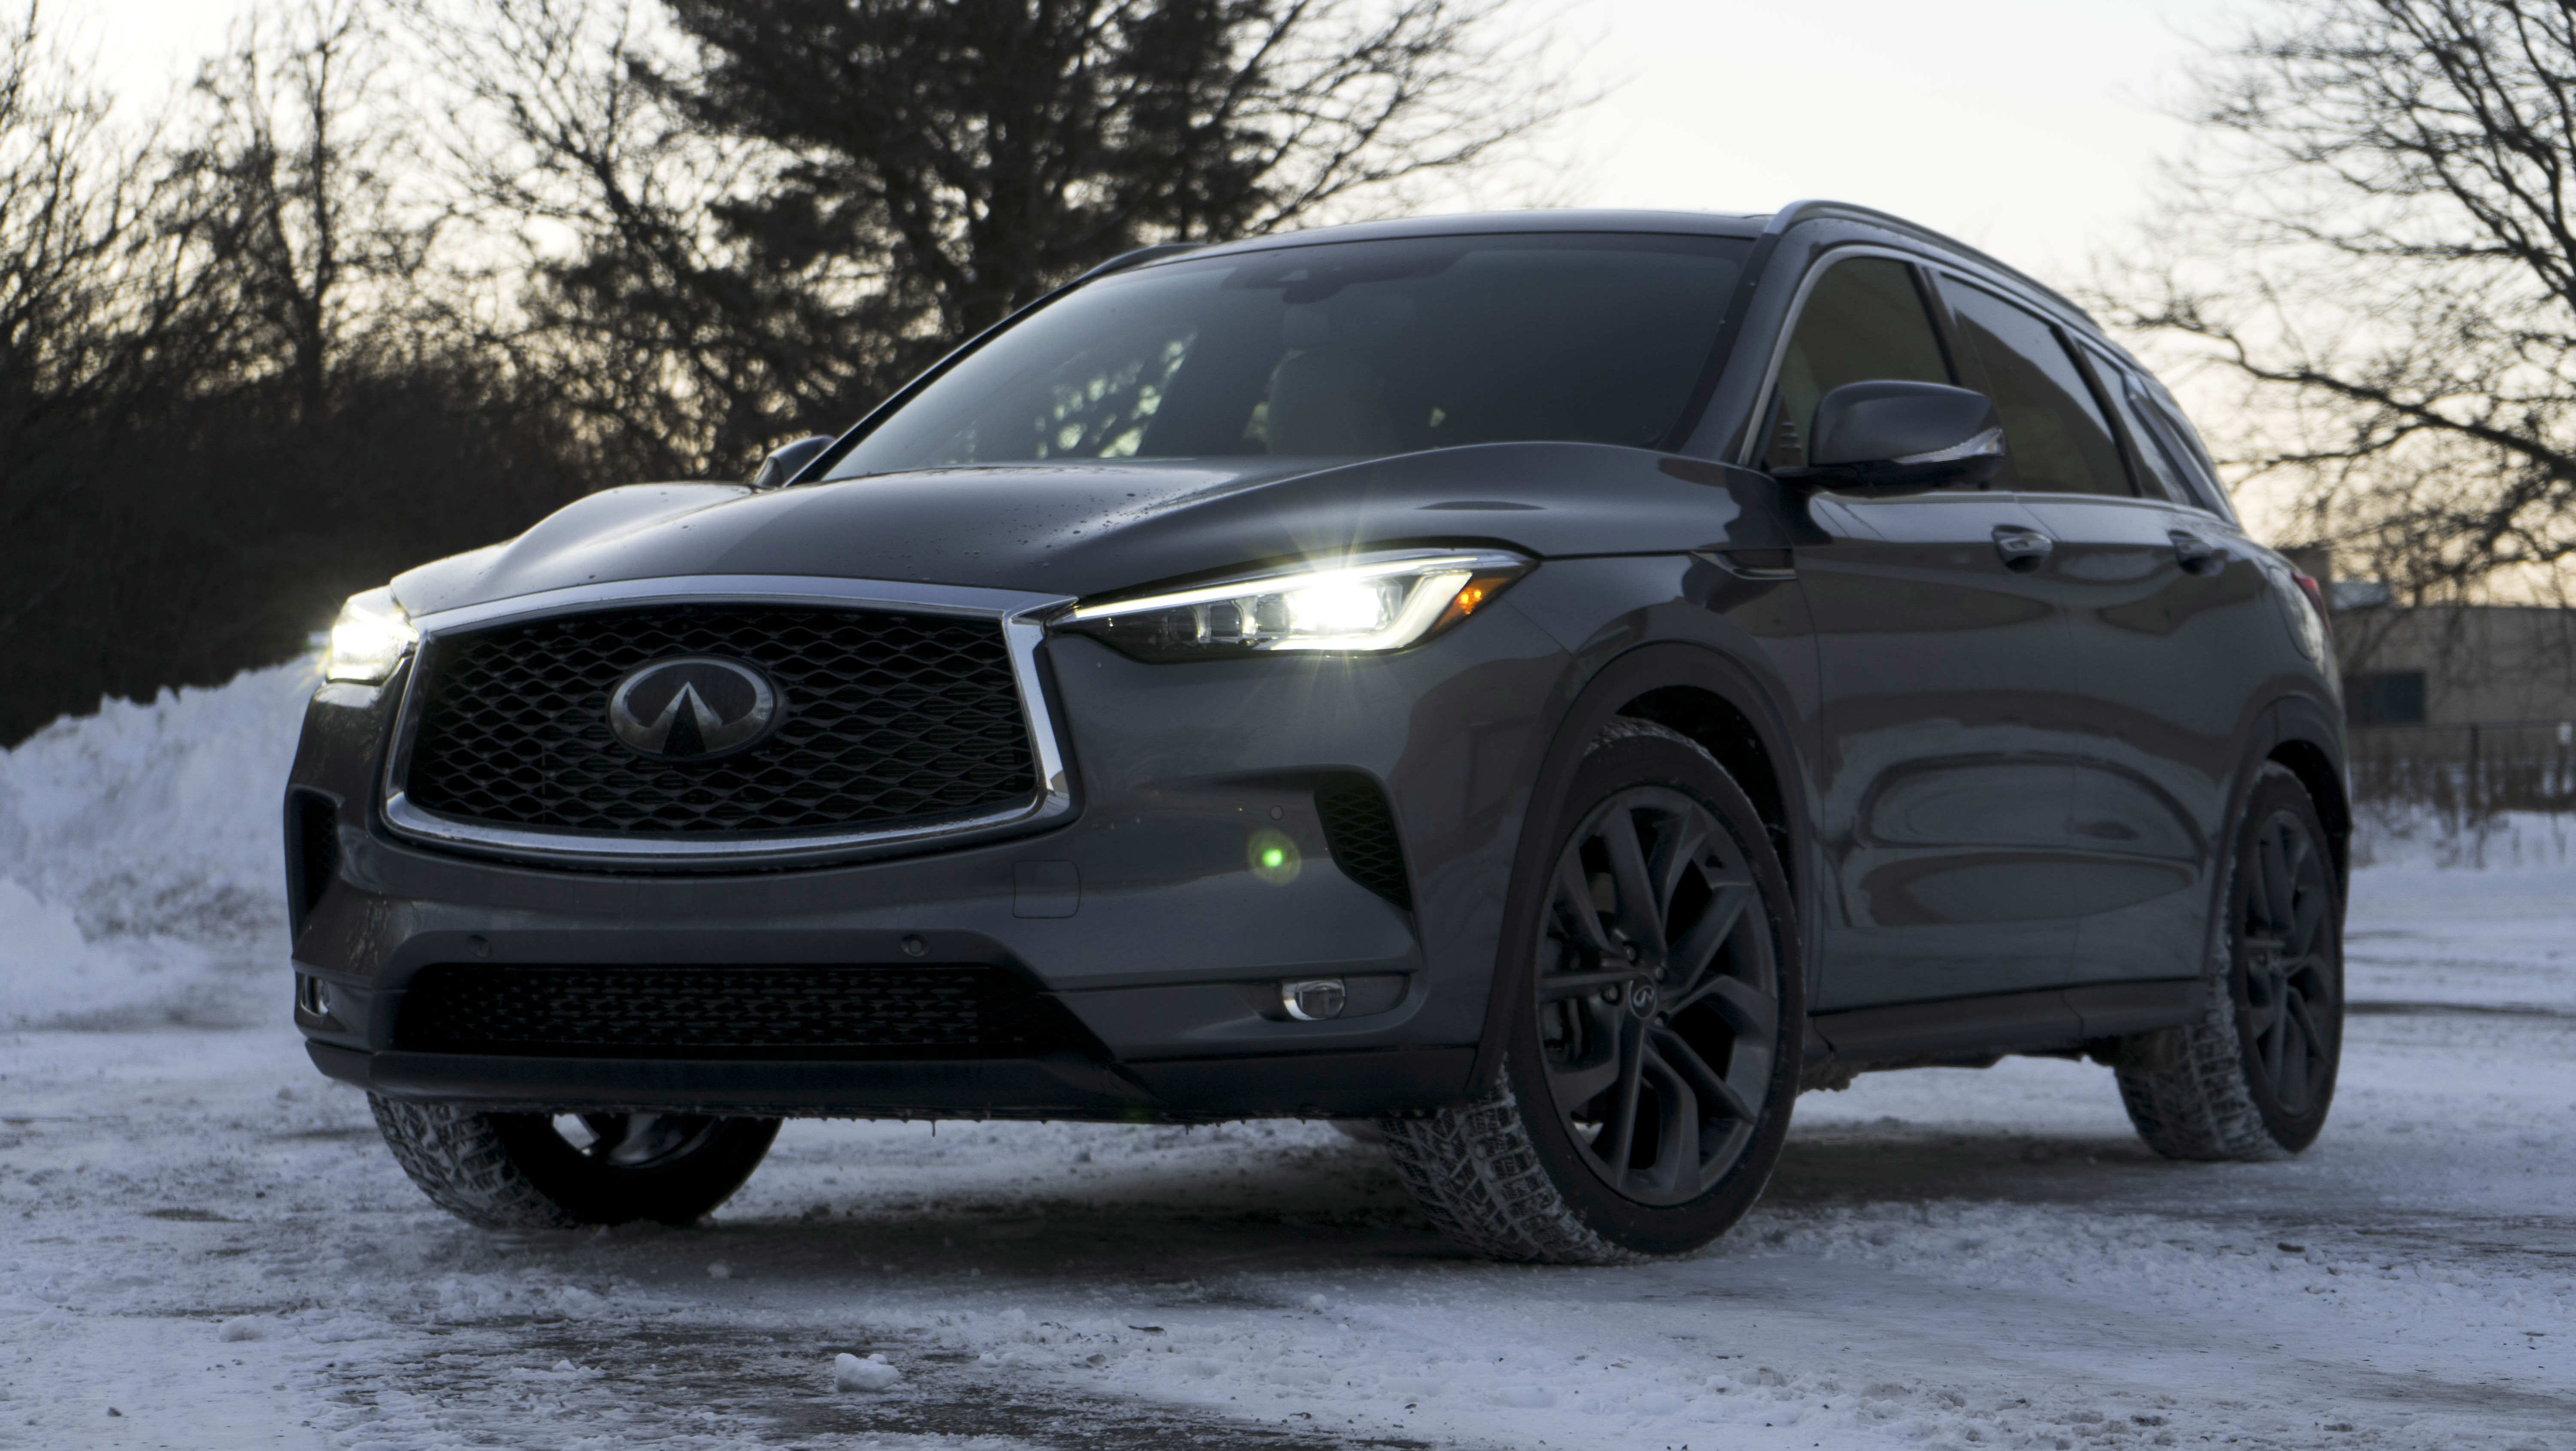 14 All New The Infiniti Qx50 2019 Trunk Specs And Review Model